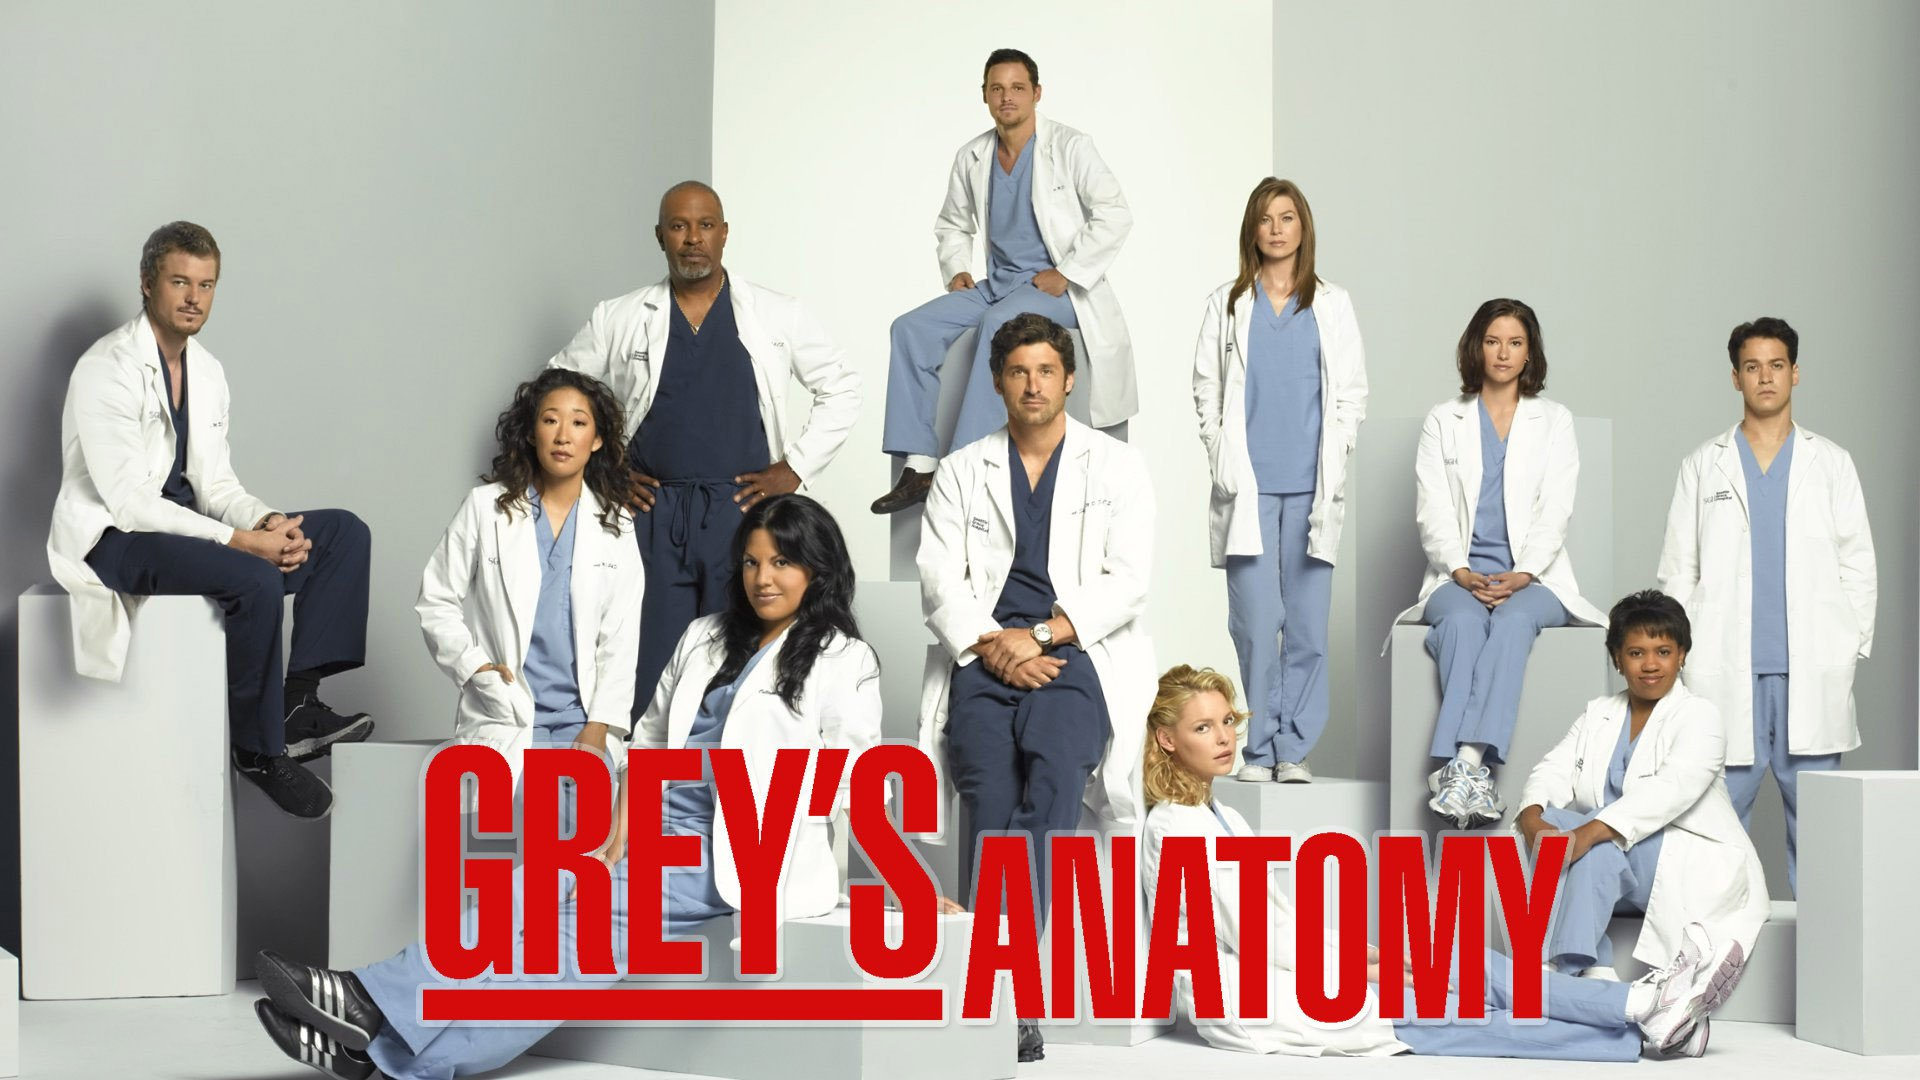 Greys Anatomy Wallpaper 9   1920 X 1080 stmednet 1920x1080